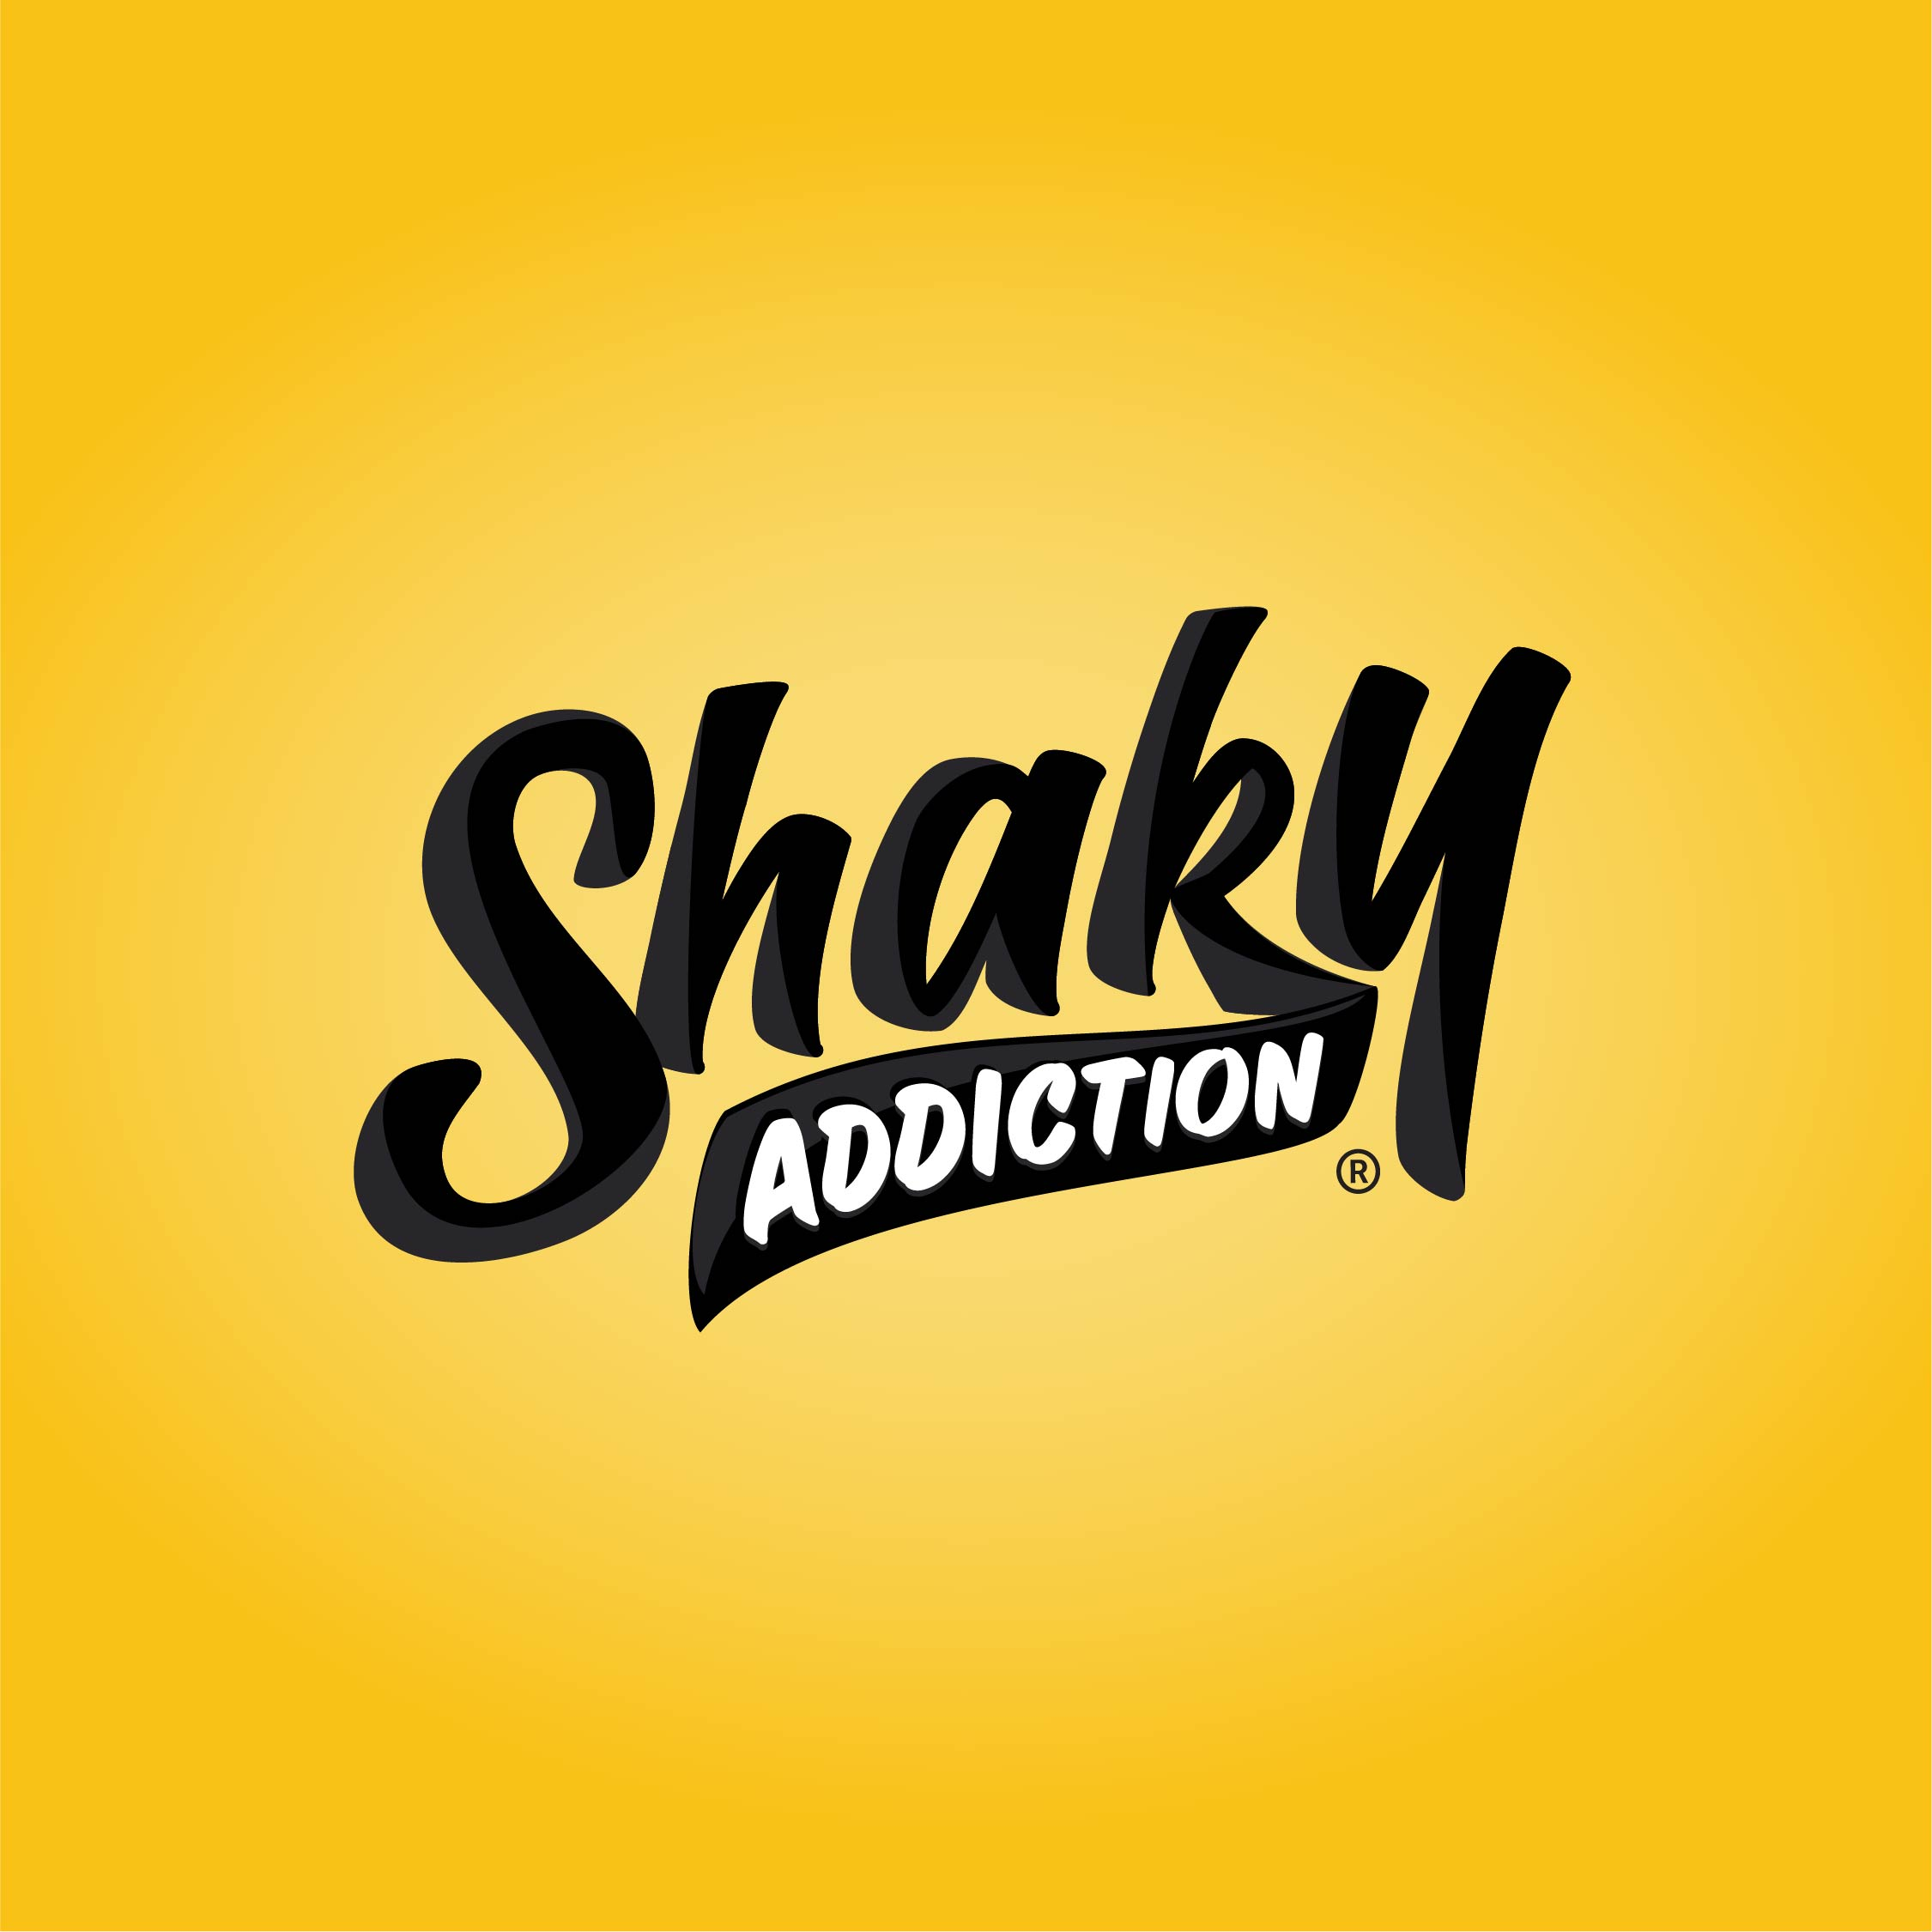 Shaky Addiction